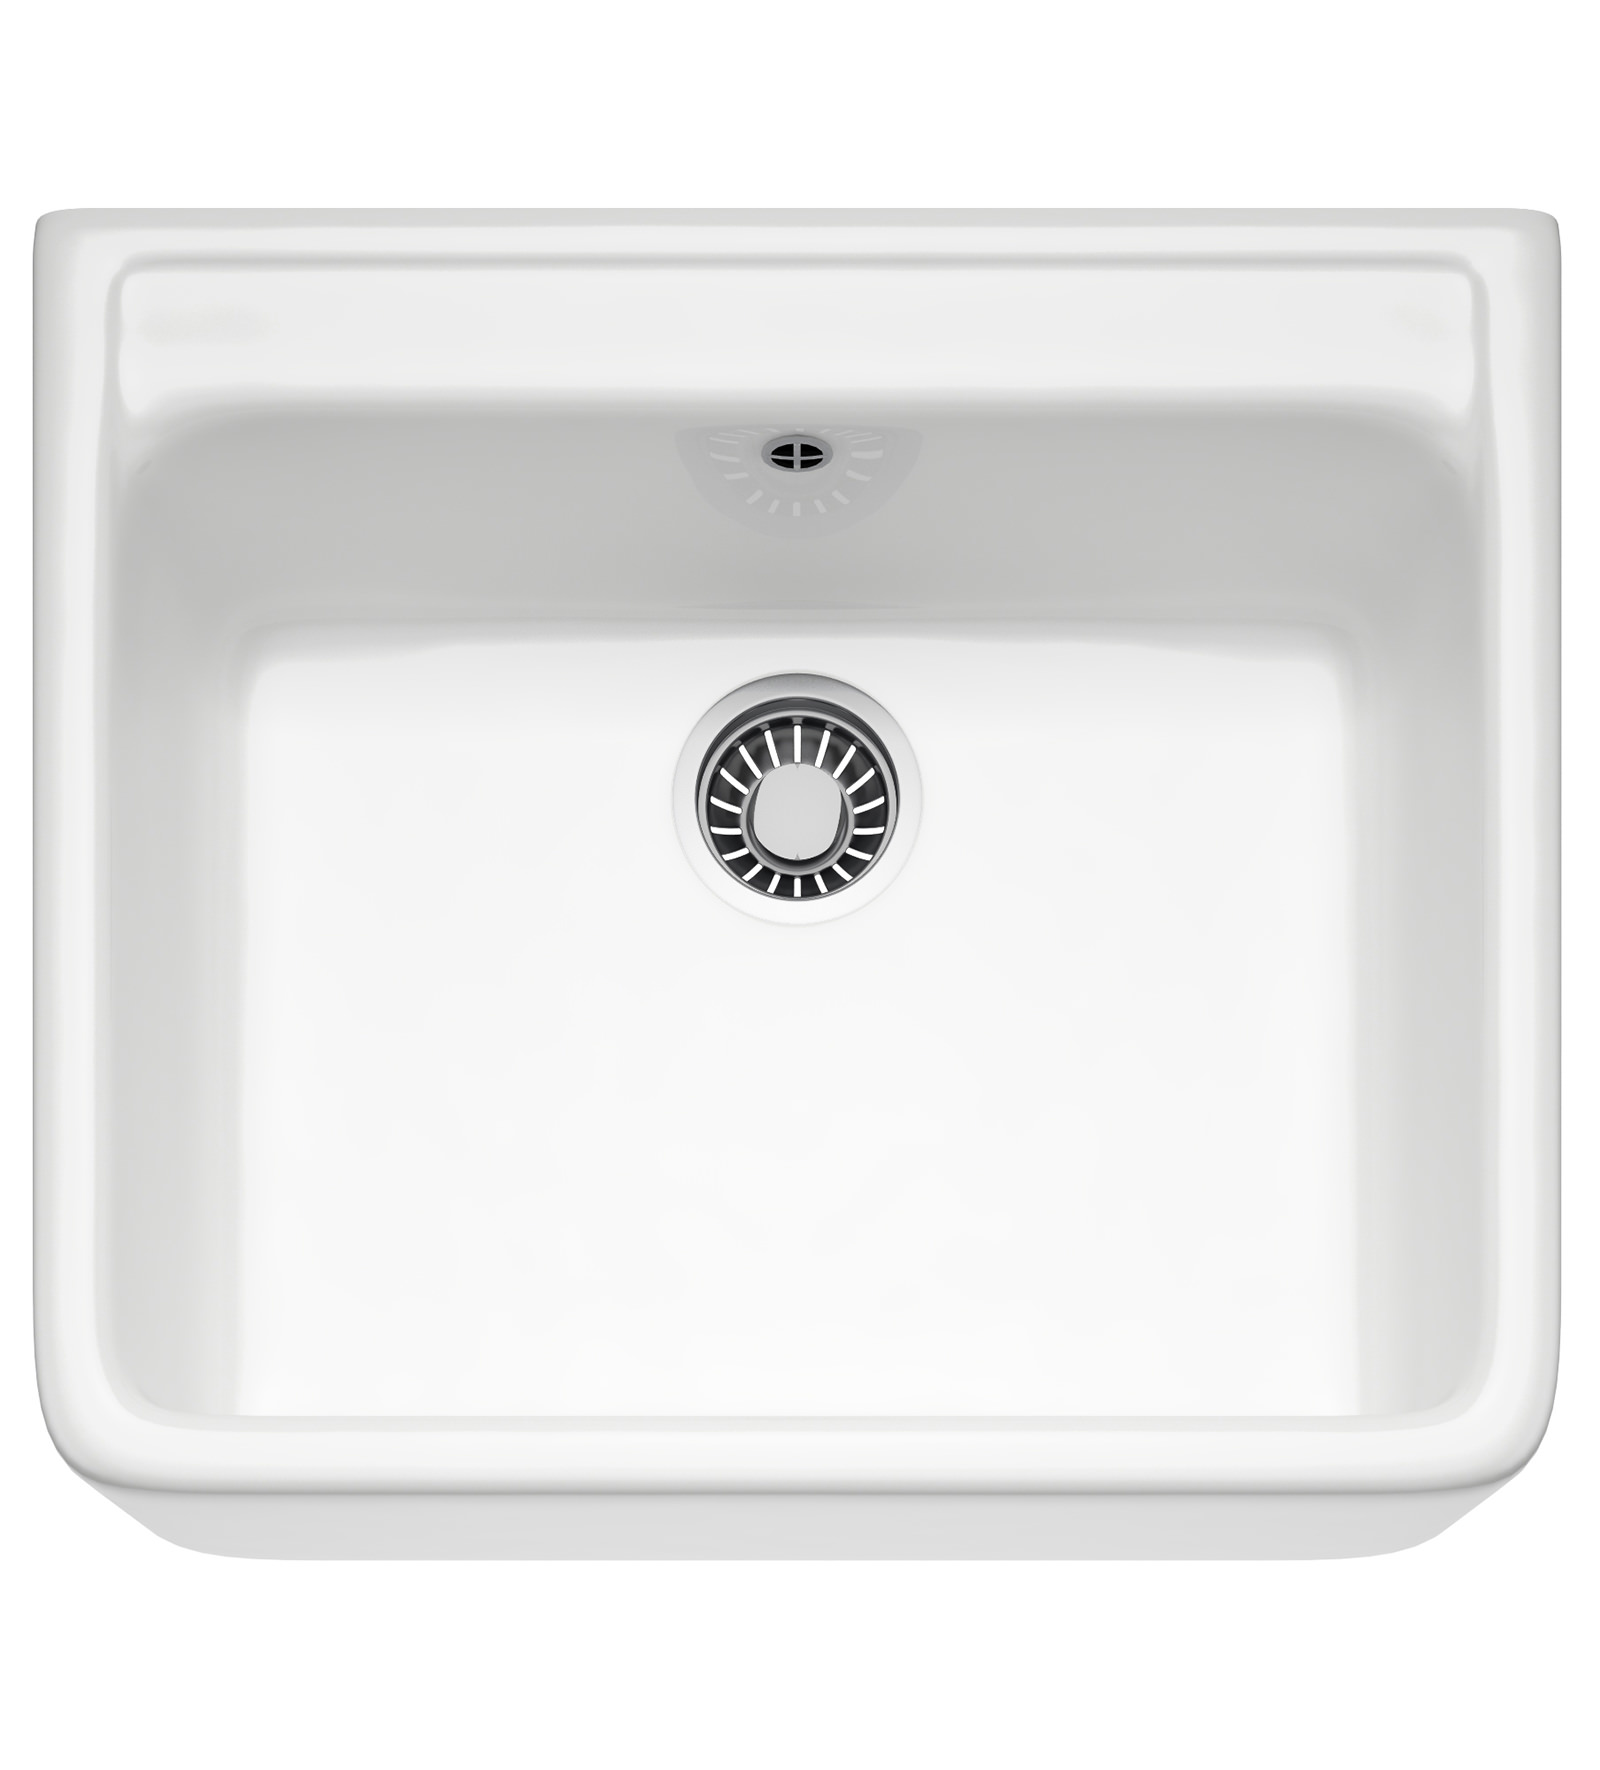 Belfast Kitchen Sink : Franke Belfast VBK 710 Ceramic White 1.0 Bowl Kitchen Sink 130.0049 ...